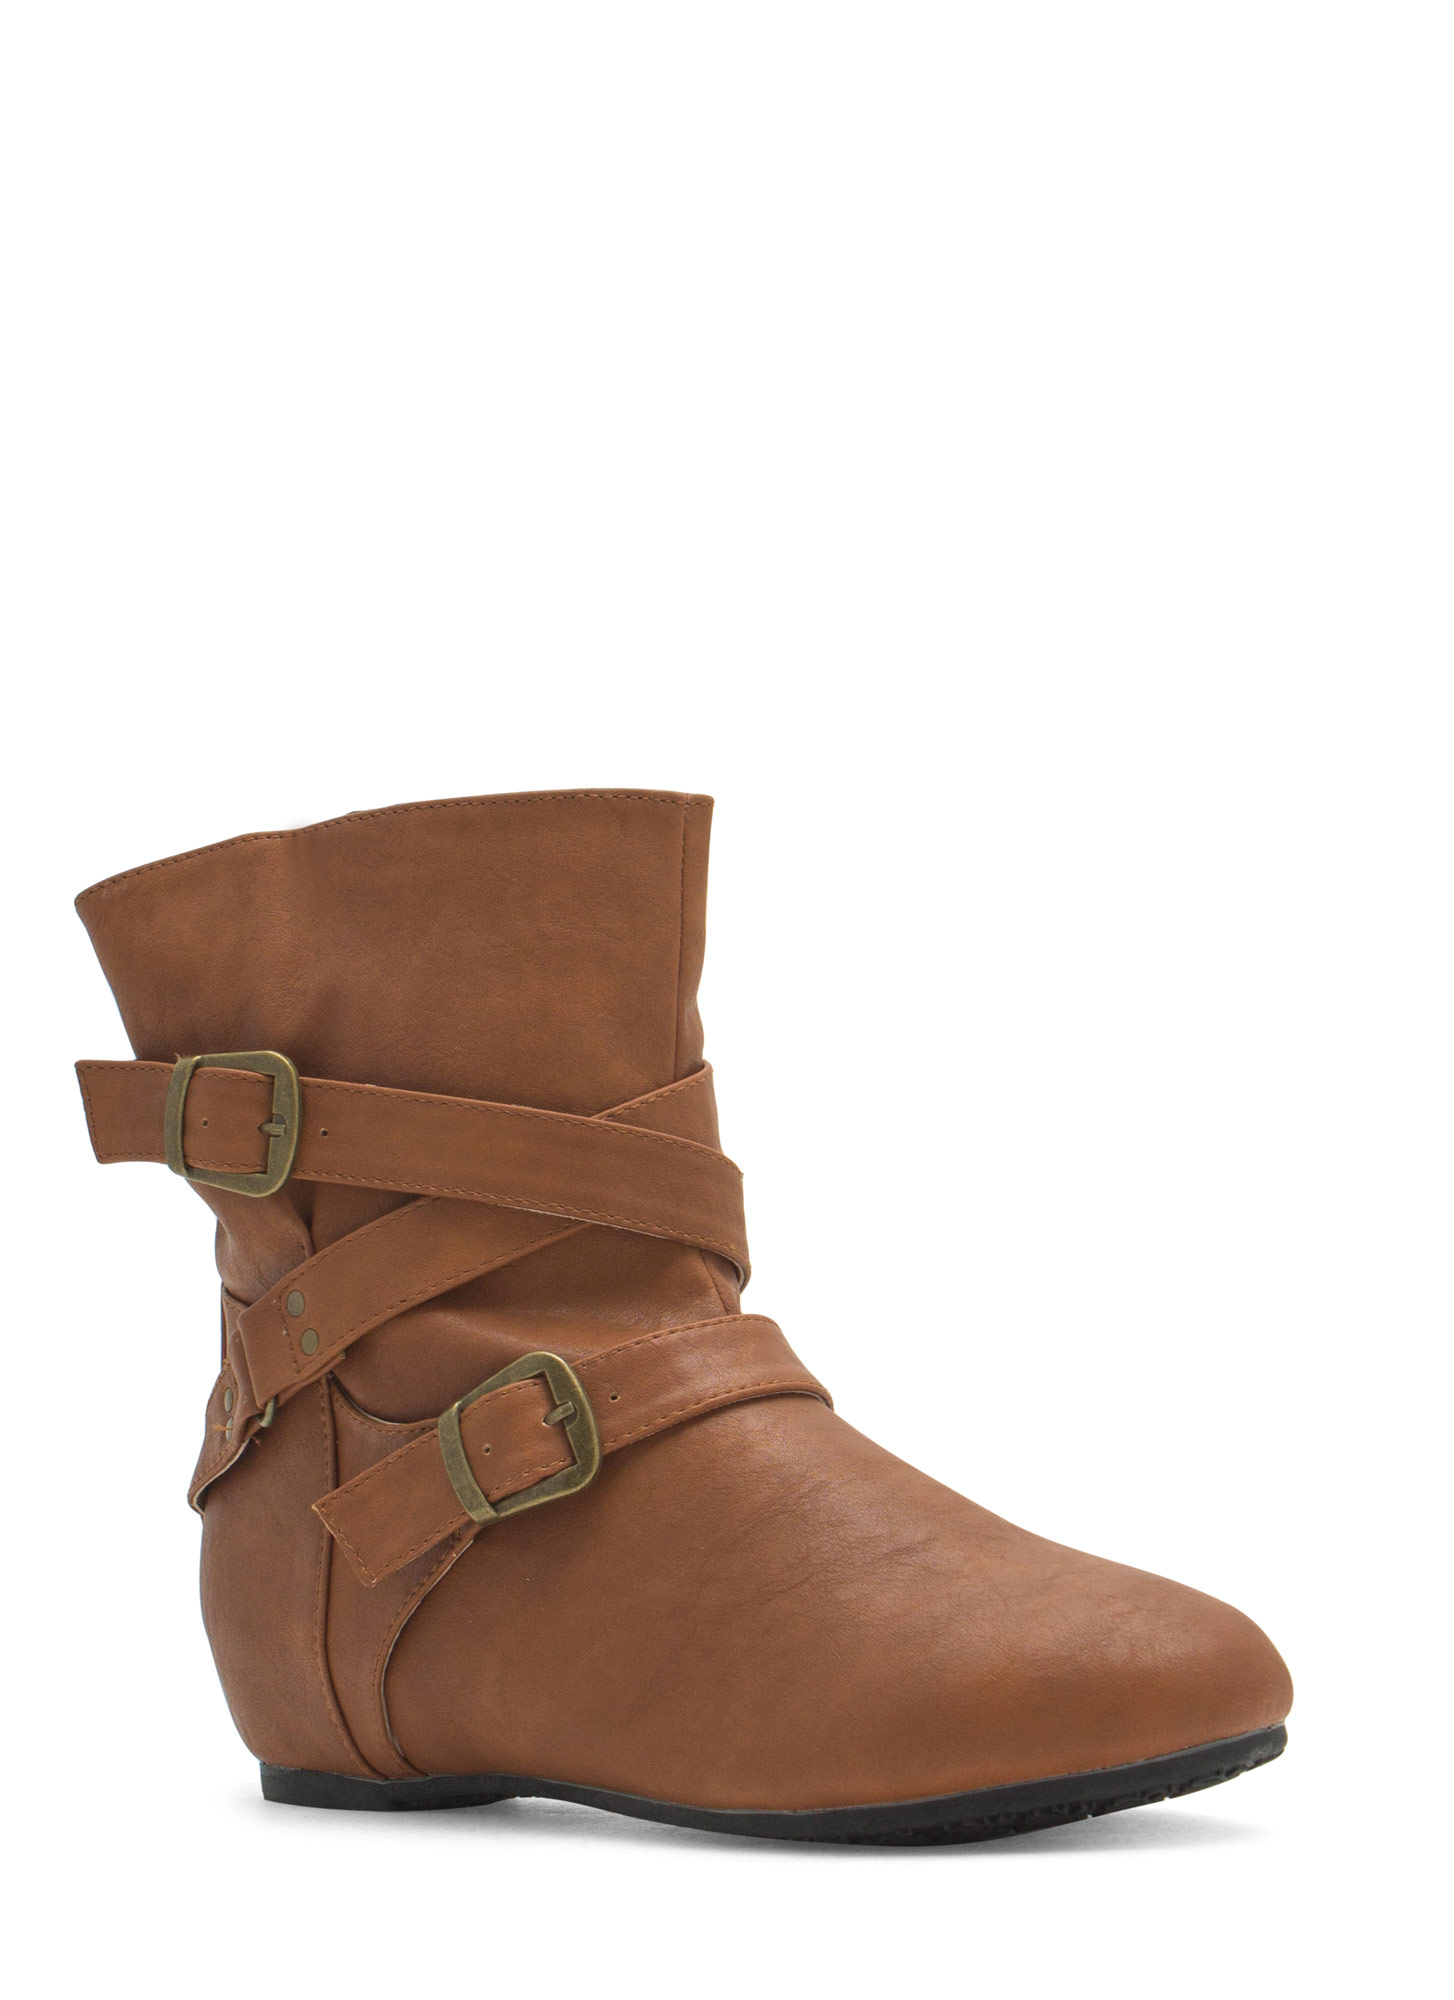 Faux Leather Low-Rise Buckled Boots WHISKY